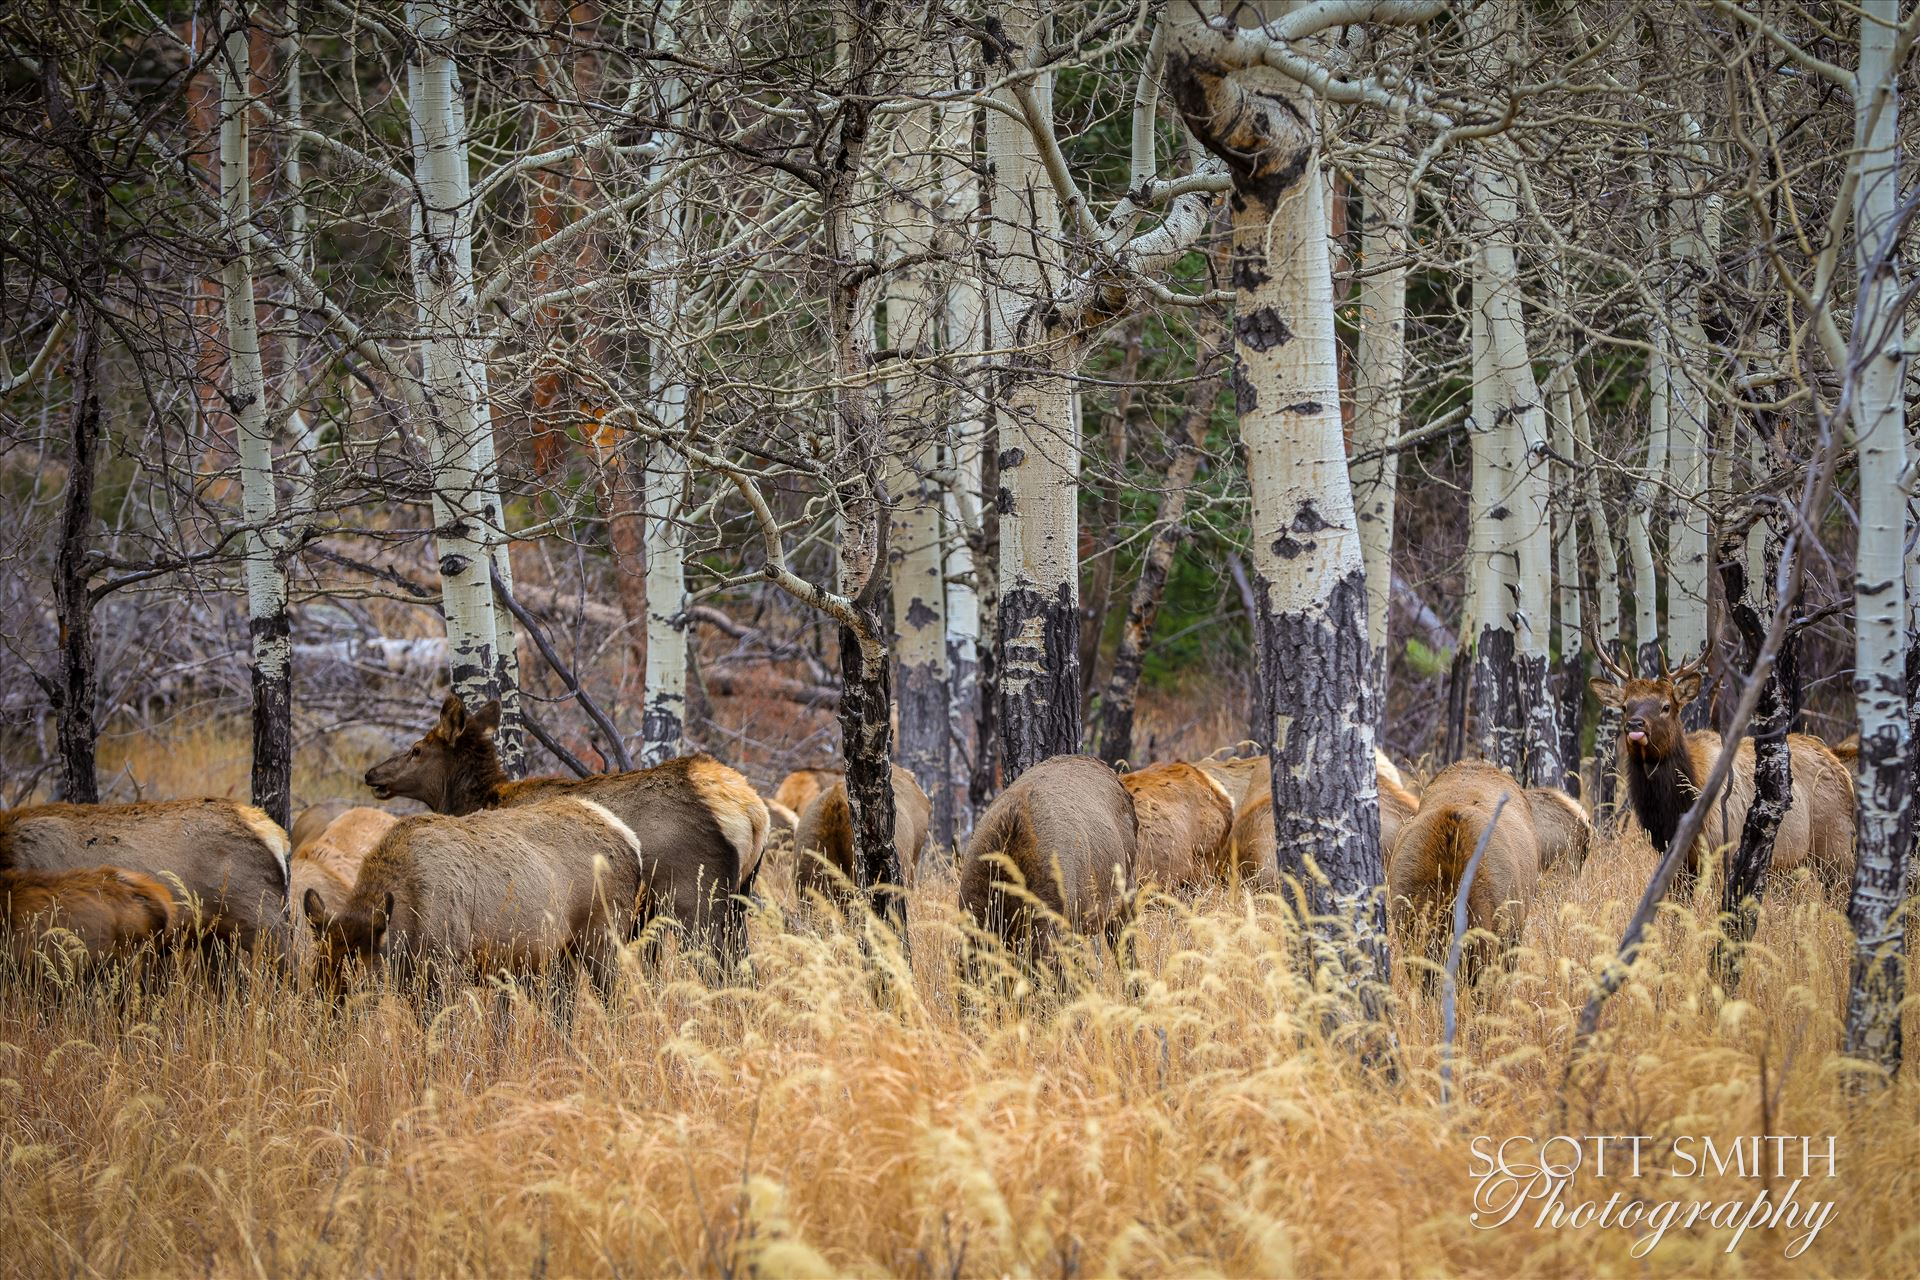 Sunday Elk No 03 - A heard of Elk near the entrance to Rocky Mountain National Park, Estes Park, Colorado. by D Scott Smith